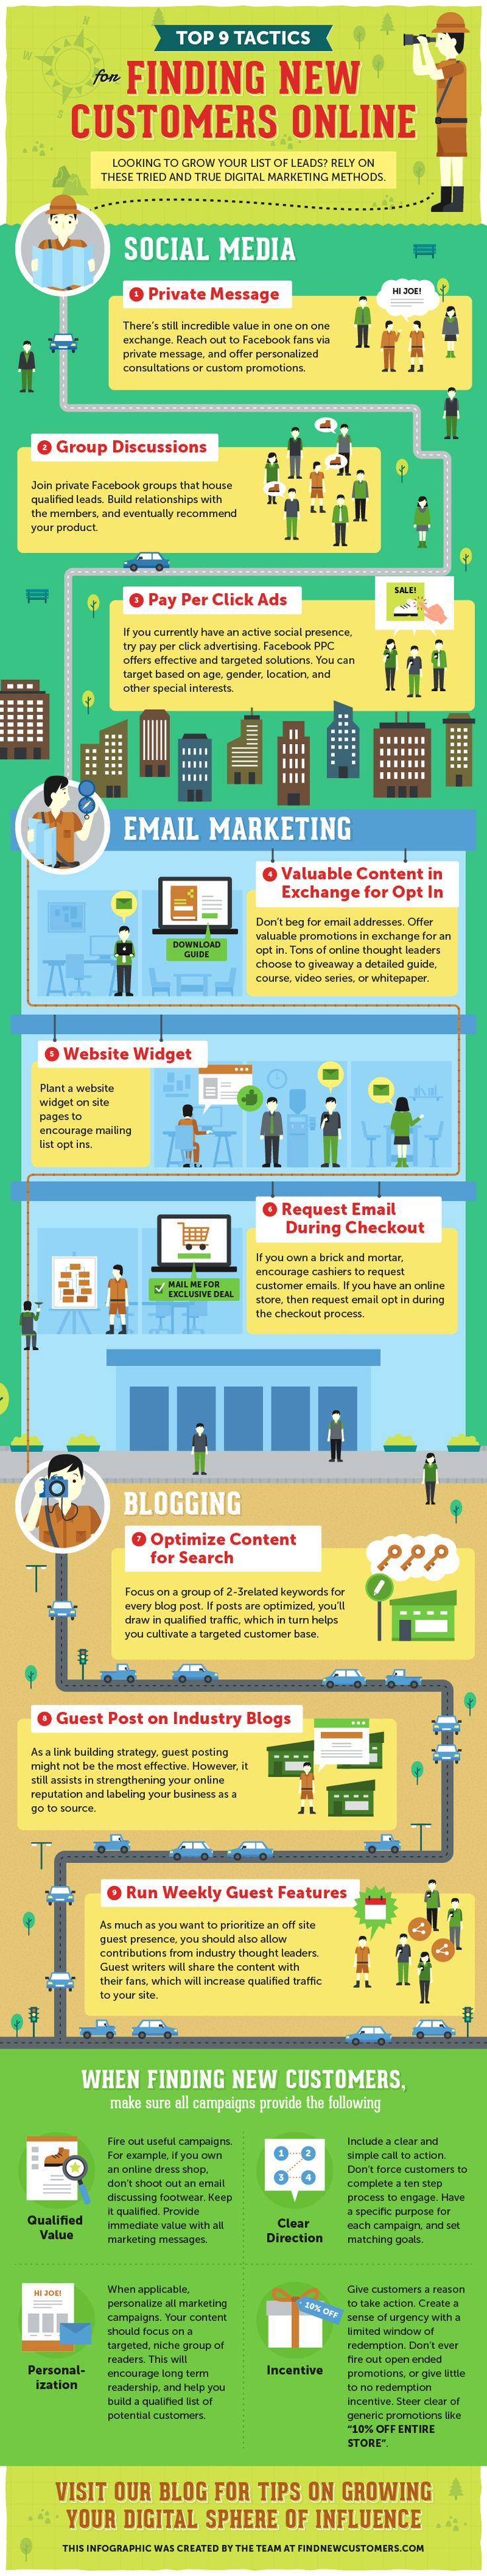 Top 9 Tactics for Finding New Customers Online #infographic #Business #Marketing